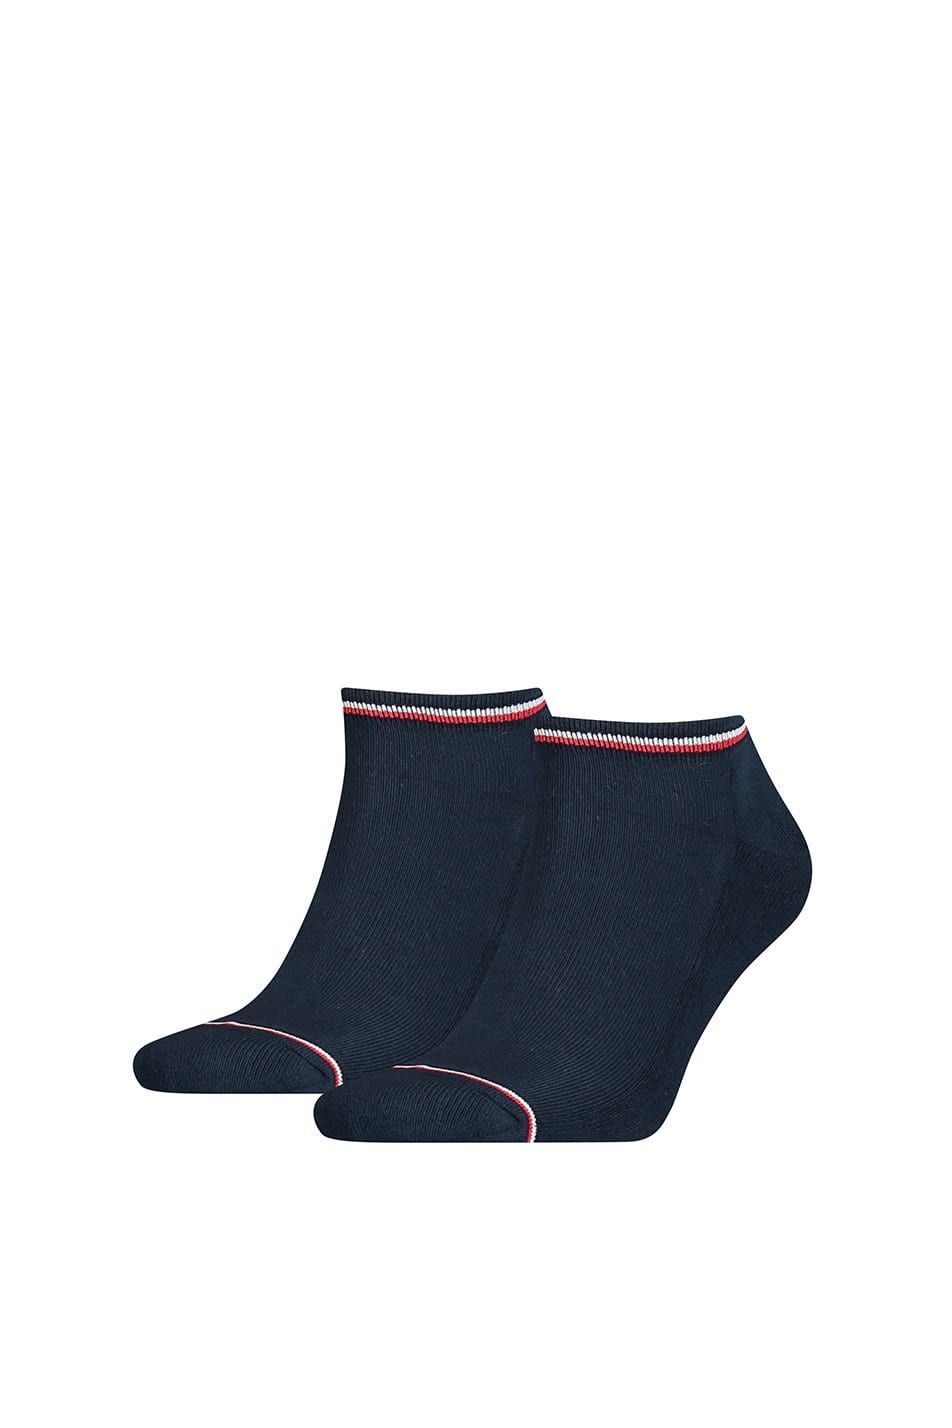 Tommy Hilfiger 2 Pack Iconic Sneaker Socks